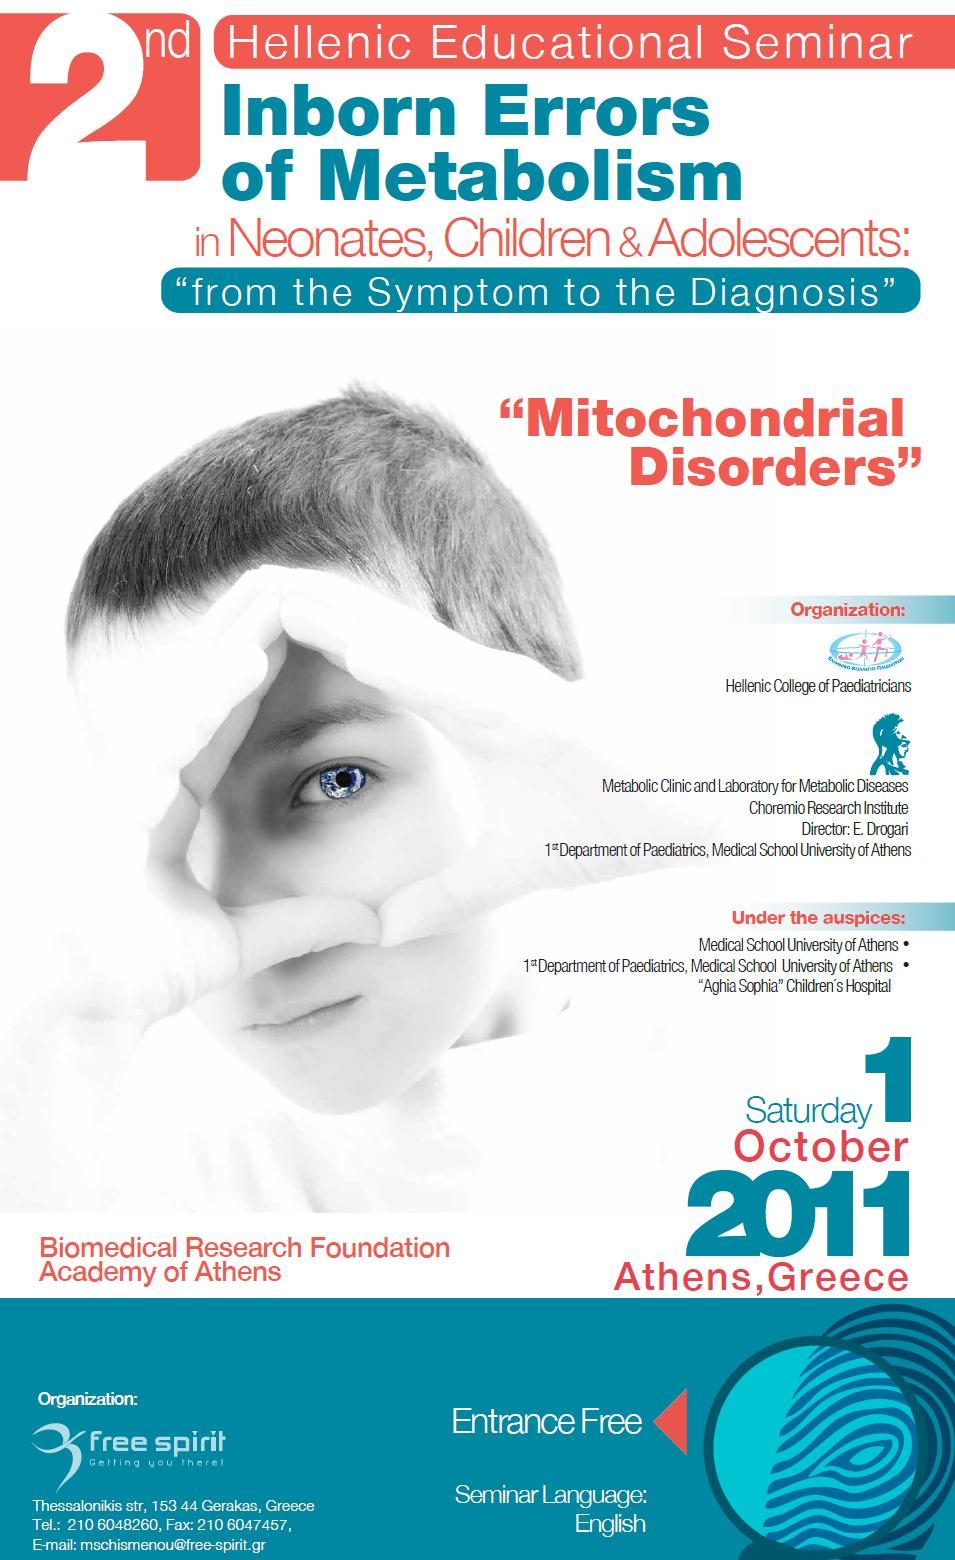 2nd Hellenic Educational Seminar Inborn errors of Metabolism in Neonates, Children & Adolescents